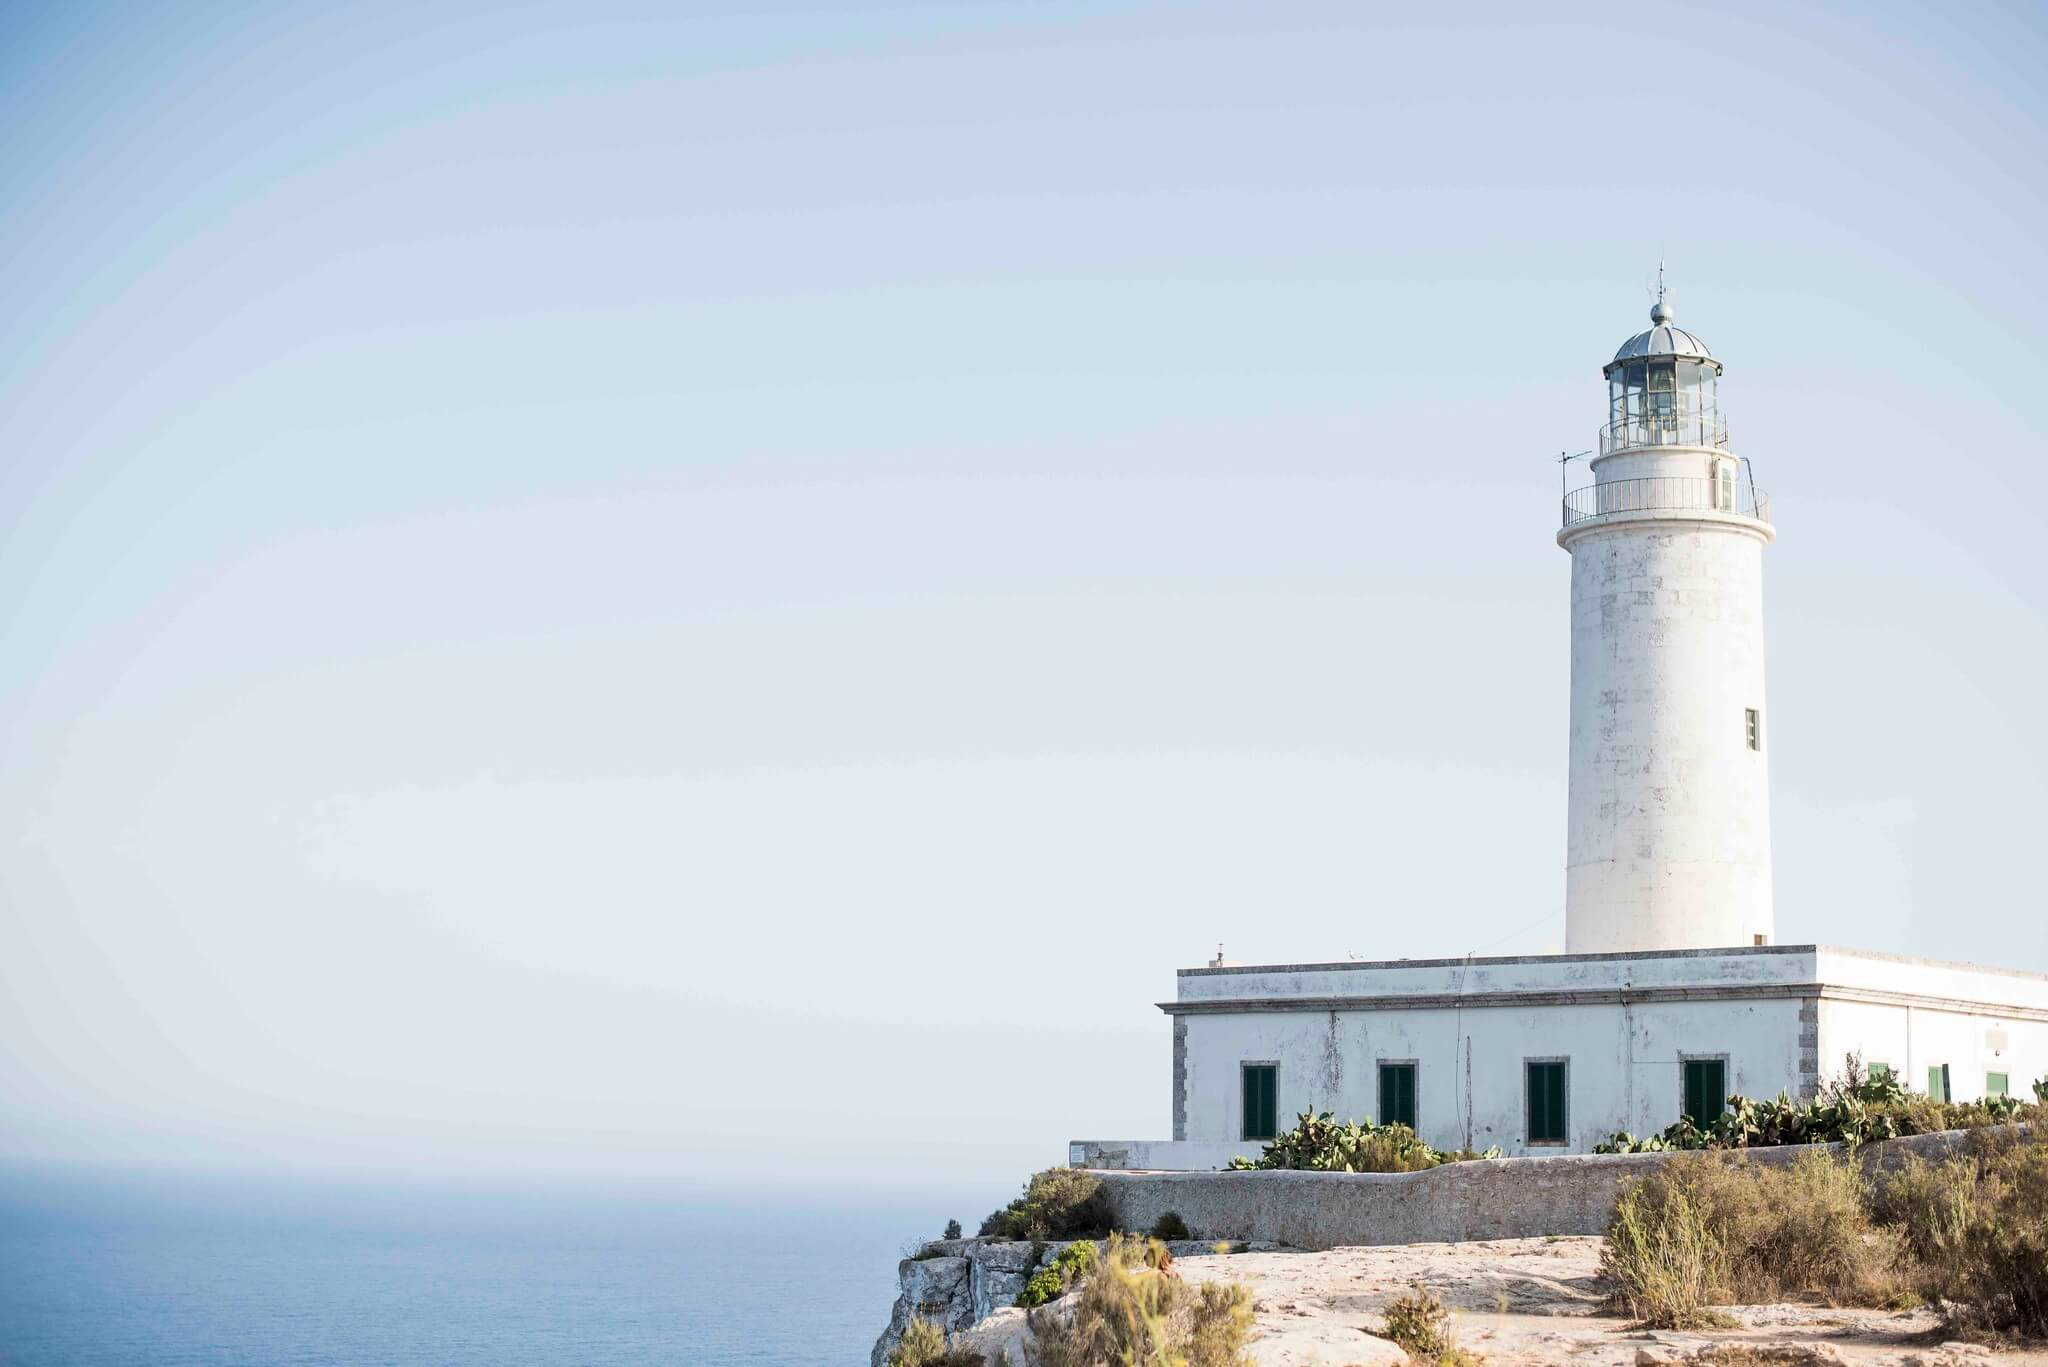 https://www.white-ibiza.com/wp-content/uploads/2020/03/formentera-lighthouses-2020-05.jpg